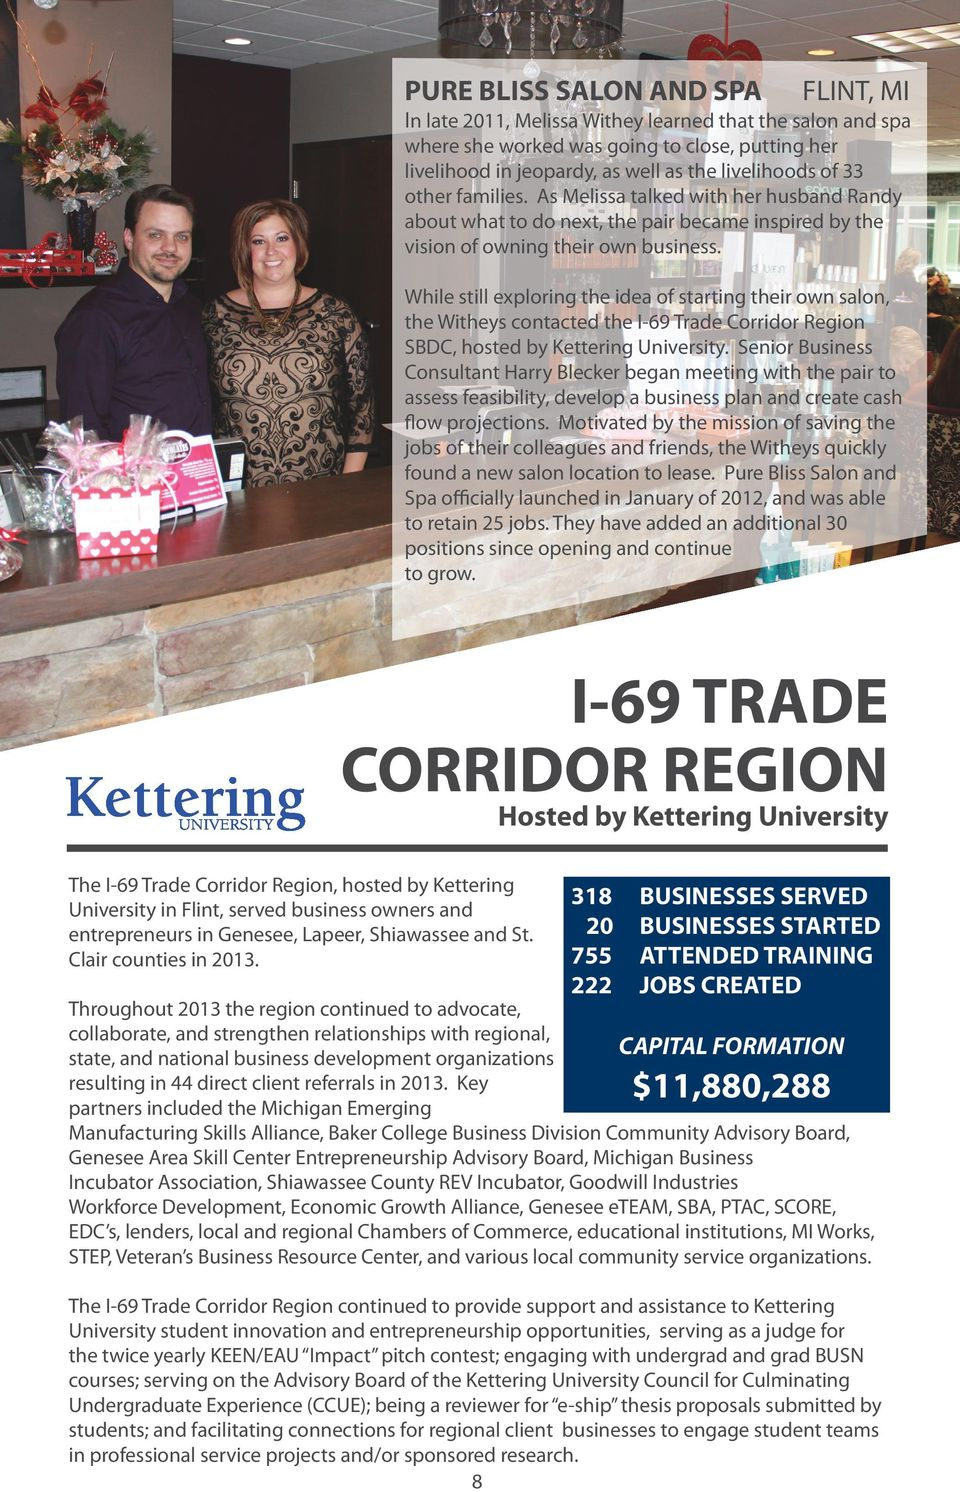 While still exploring the idea of starting their own salon, the Witheys contacted the I-69 Trade Corridor Region SBDC, hosted by Kettering University.